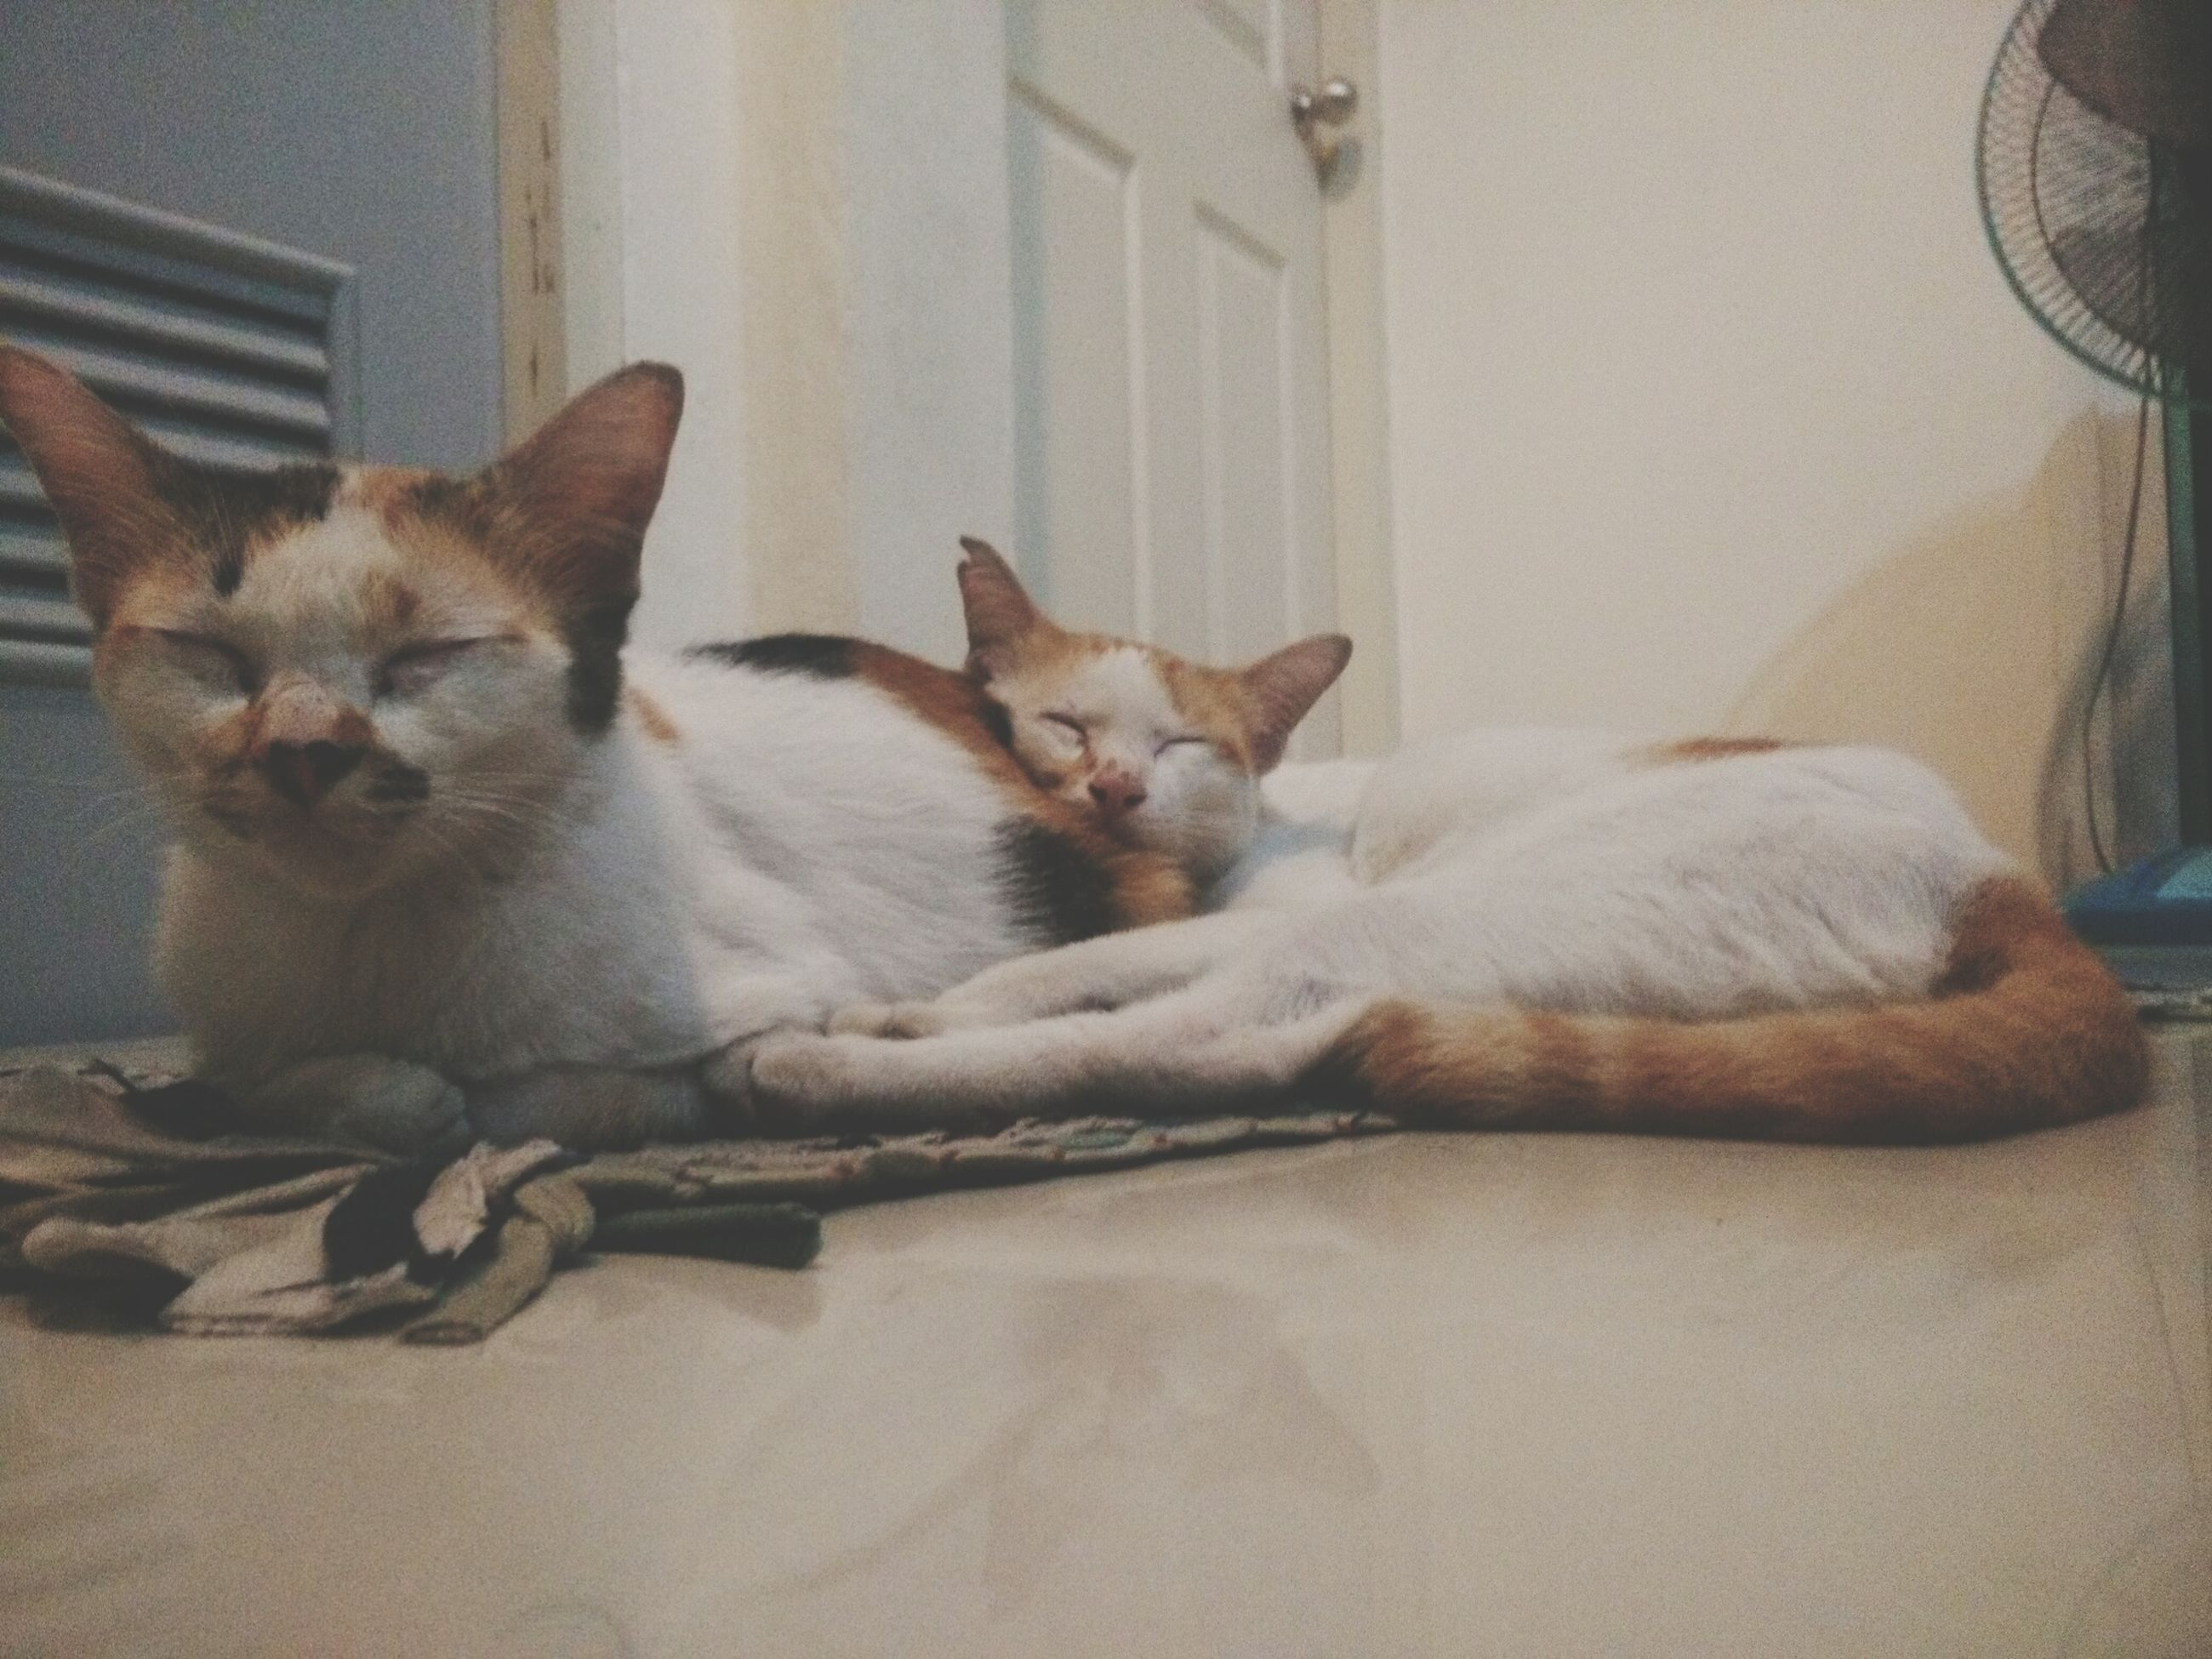 domestic animals, pets, mammal, animal themes, domestic cat, cat, one animal, indoors, feline, relaxation, two animals, lying down, home interior, portrait, whisker, resting, looking at camera, no people, sitting, young animal